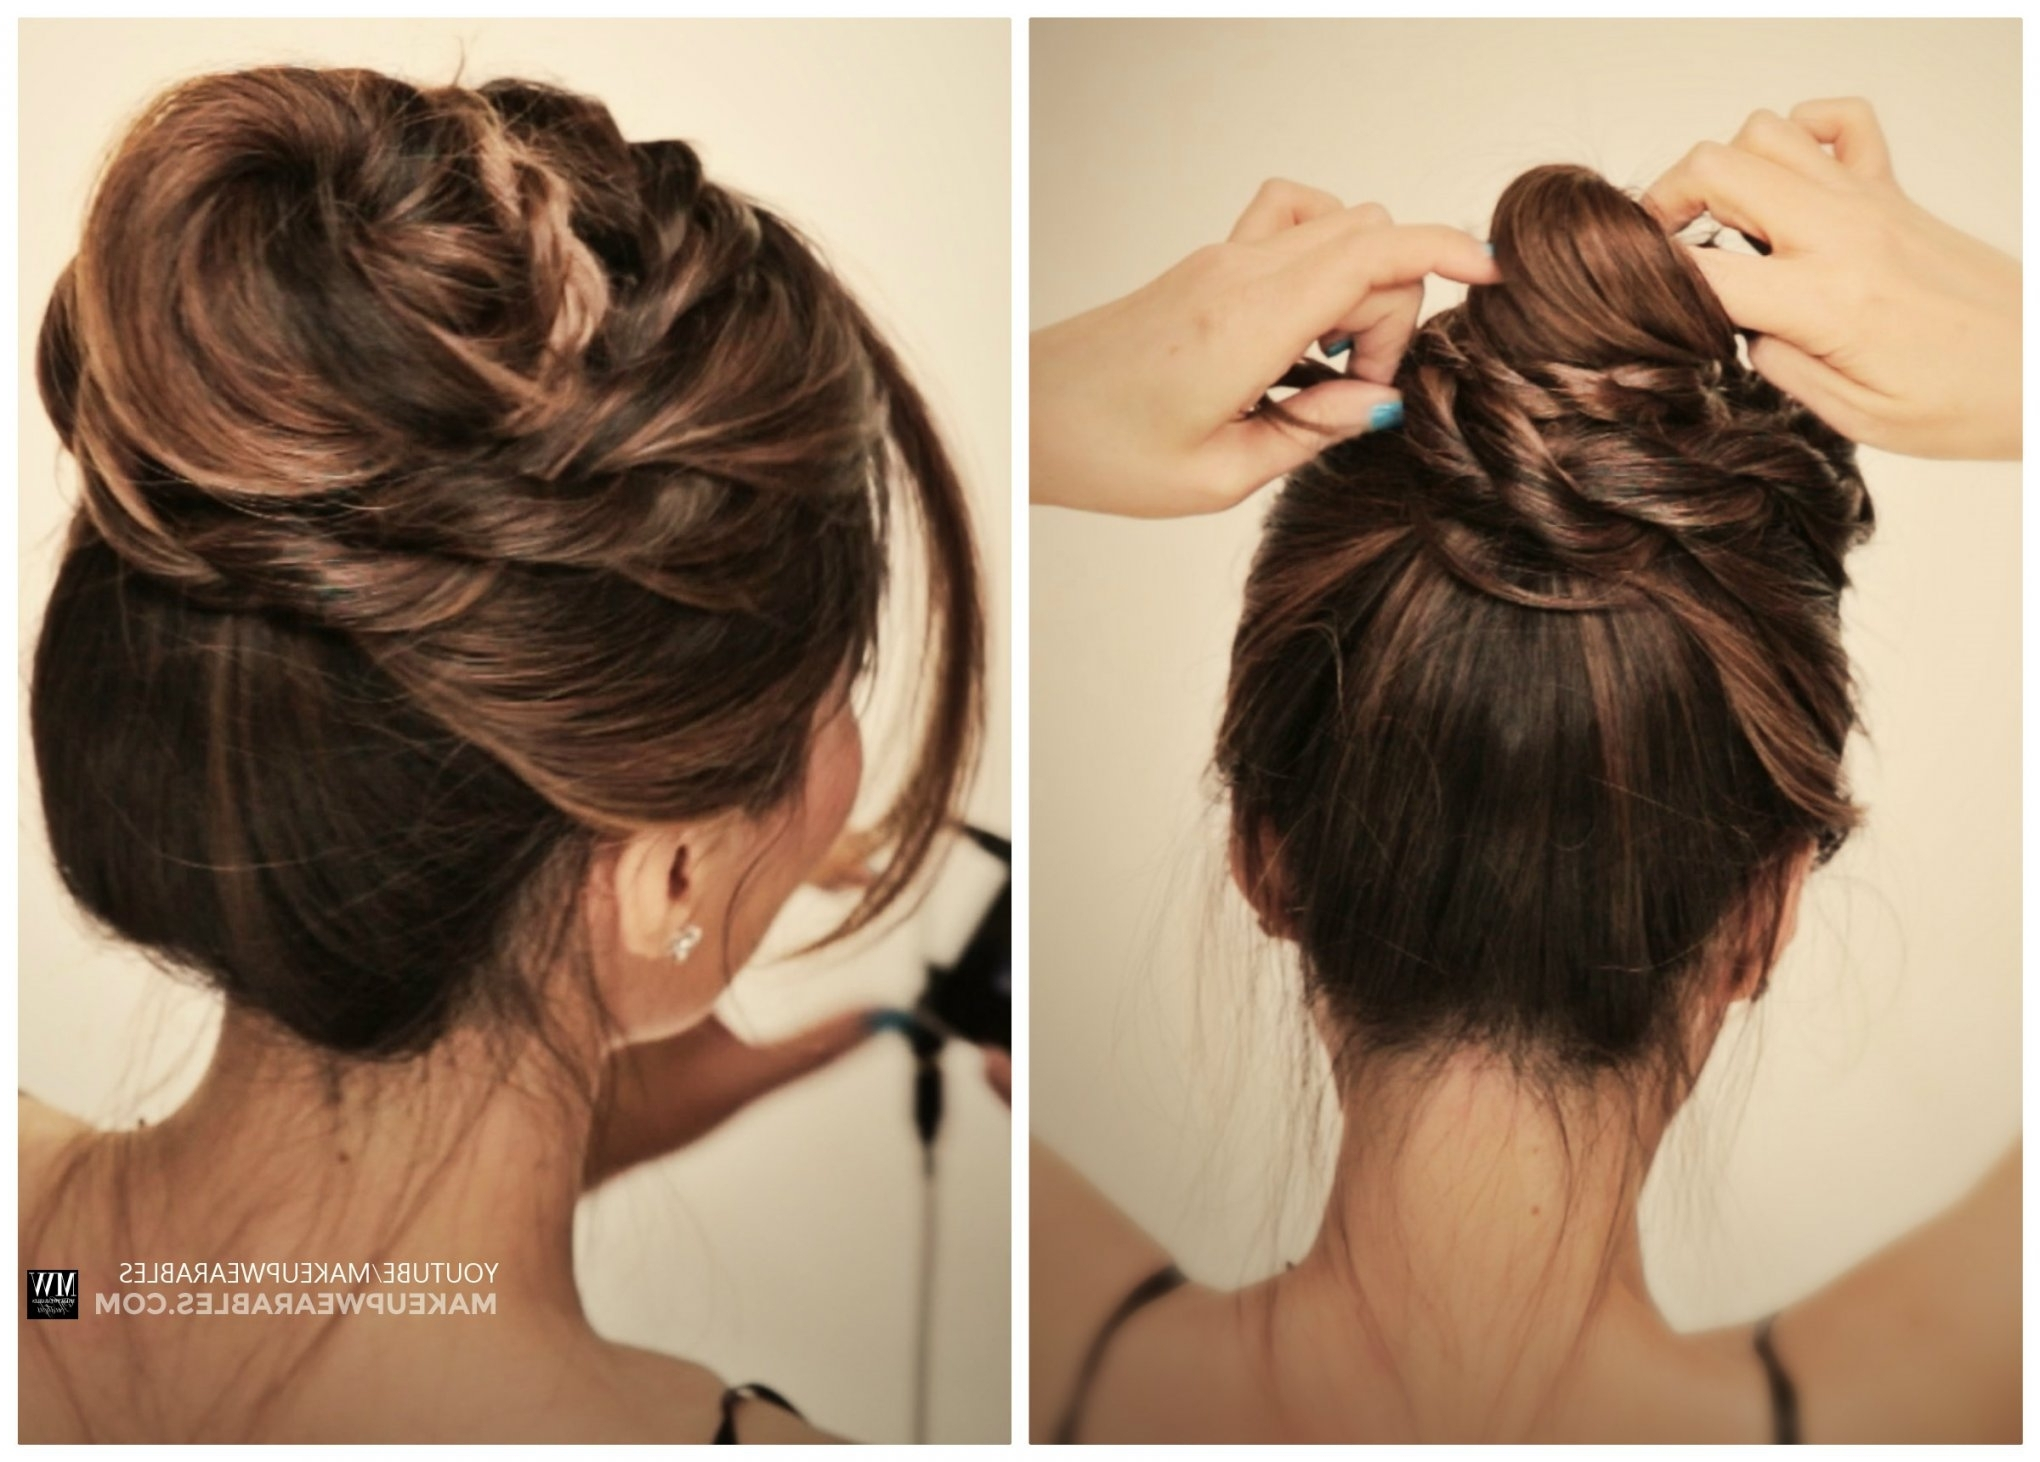 How To: 5 Amazingly Cute + Easy Hairstyles With A Simple Twist Regarding Cute And Easy Updo Hairstyles (View 2 of 15)